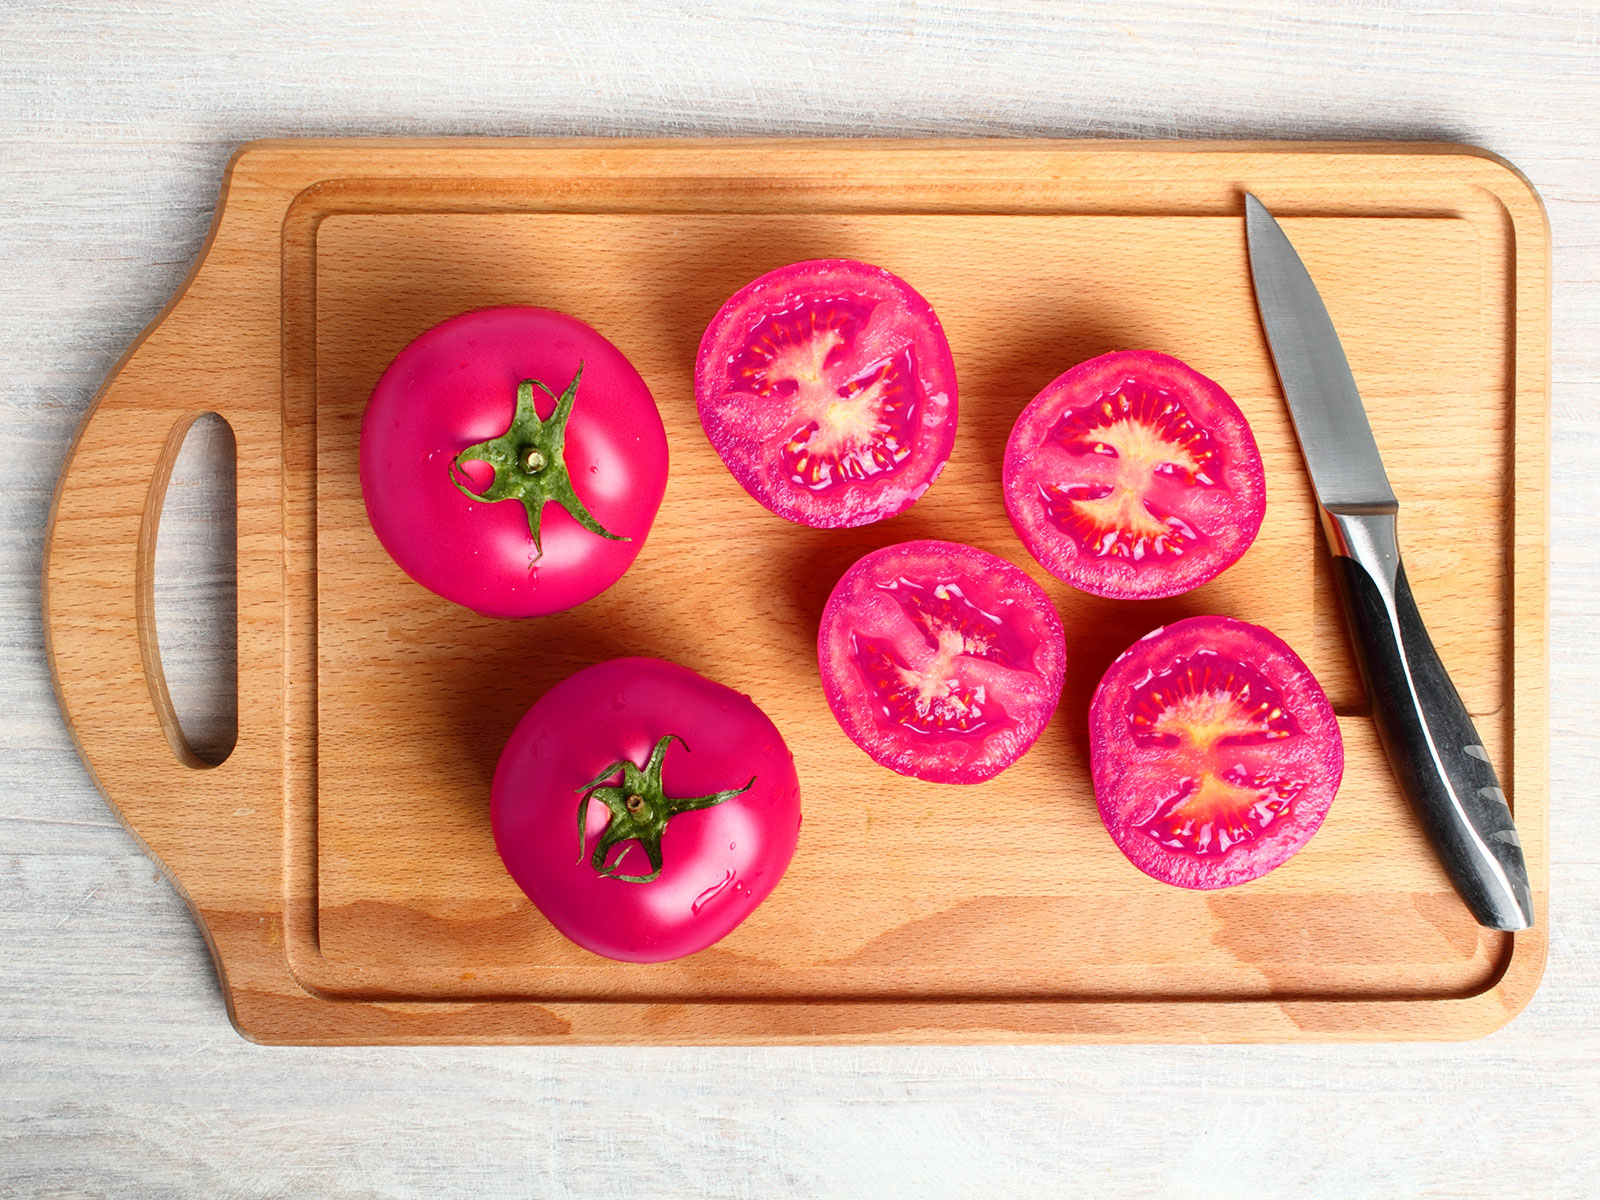 hot pink tomatoes from beets